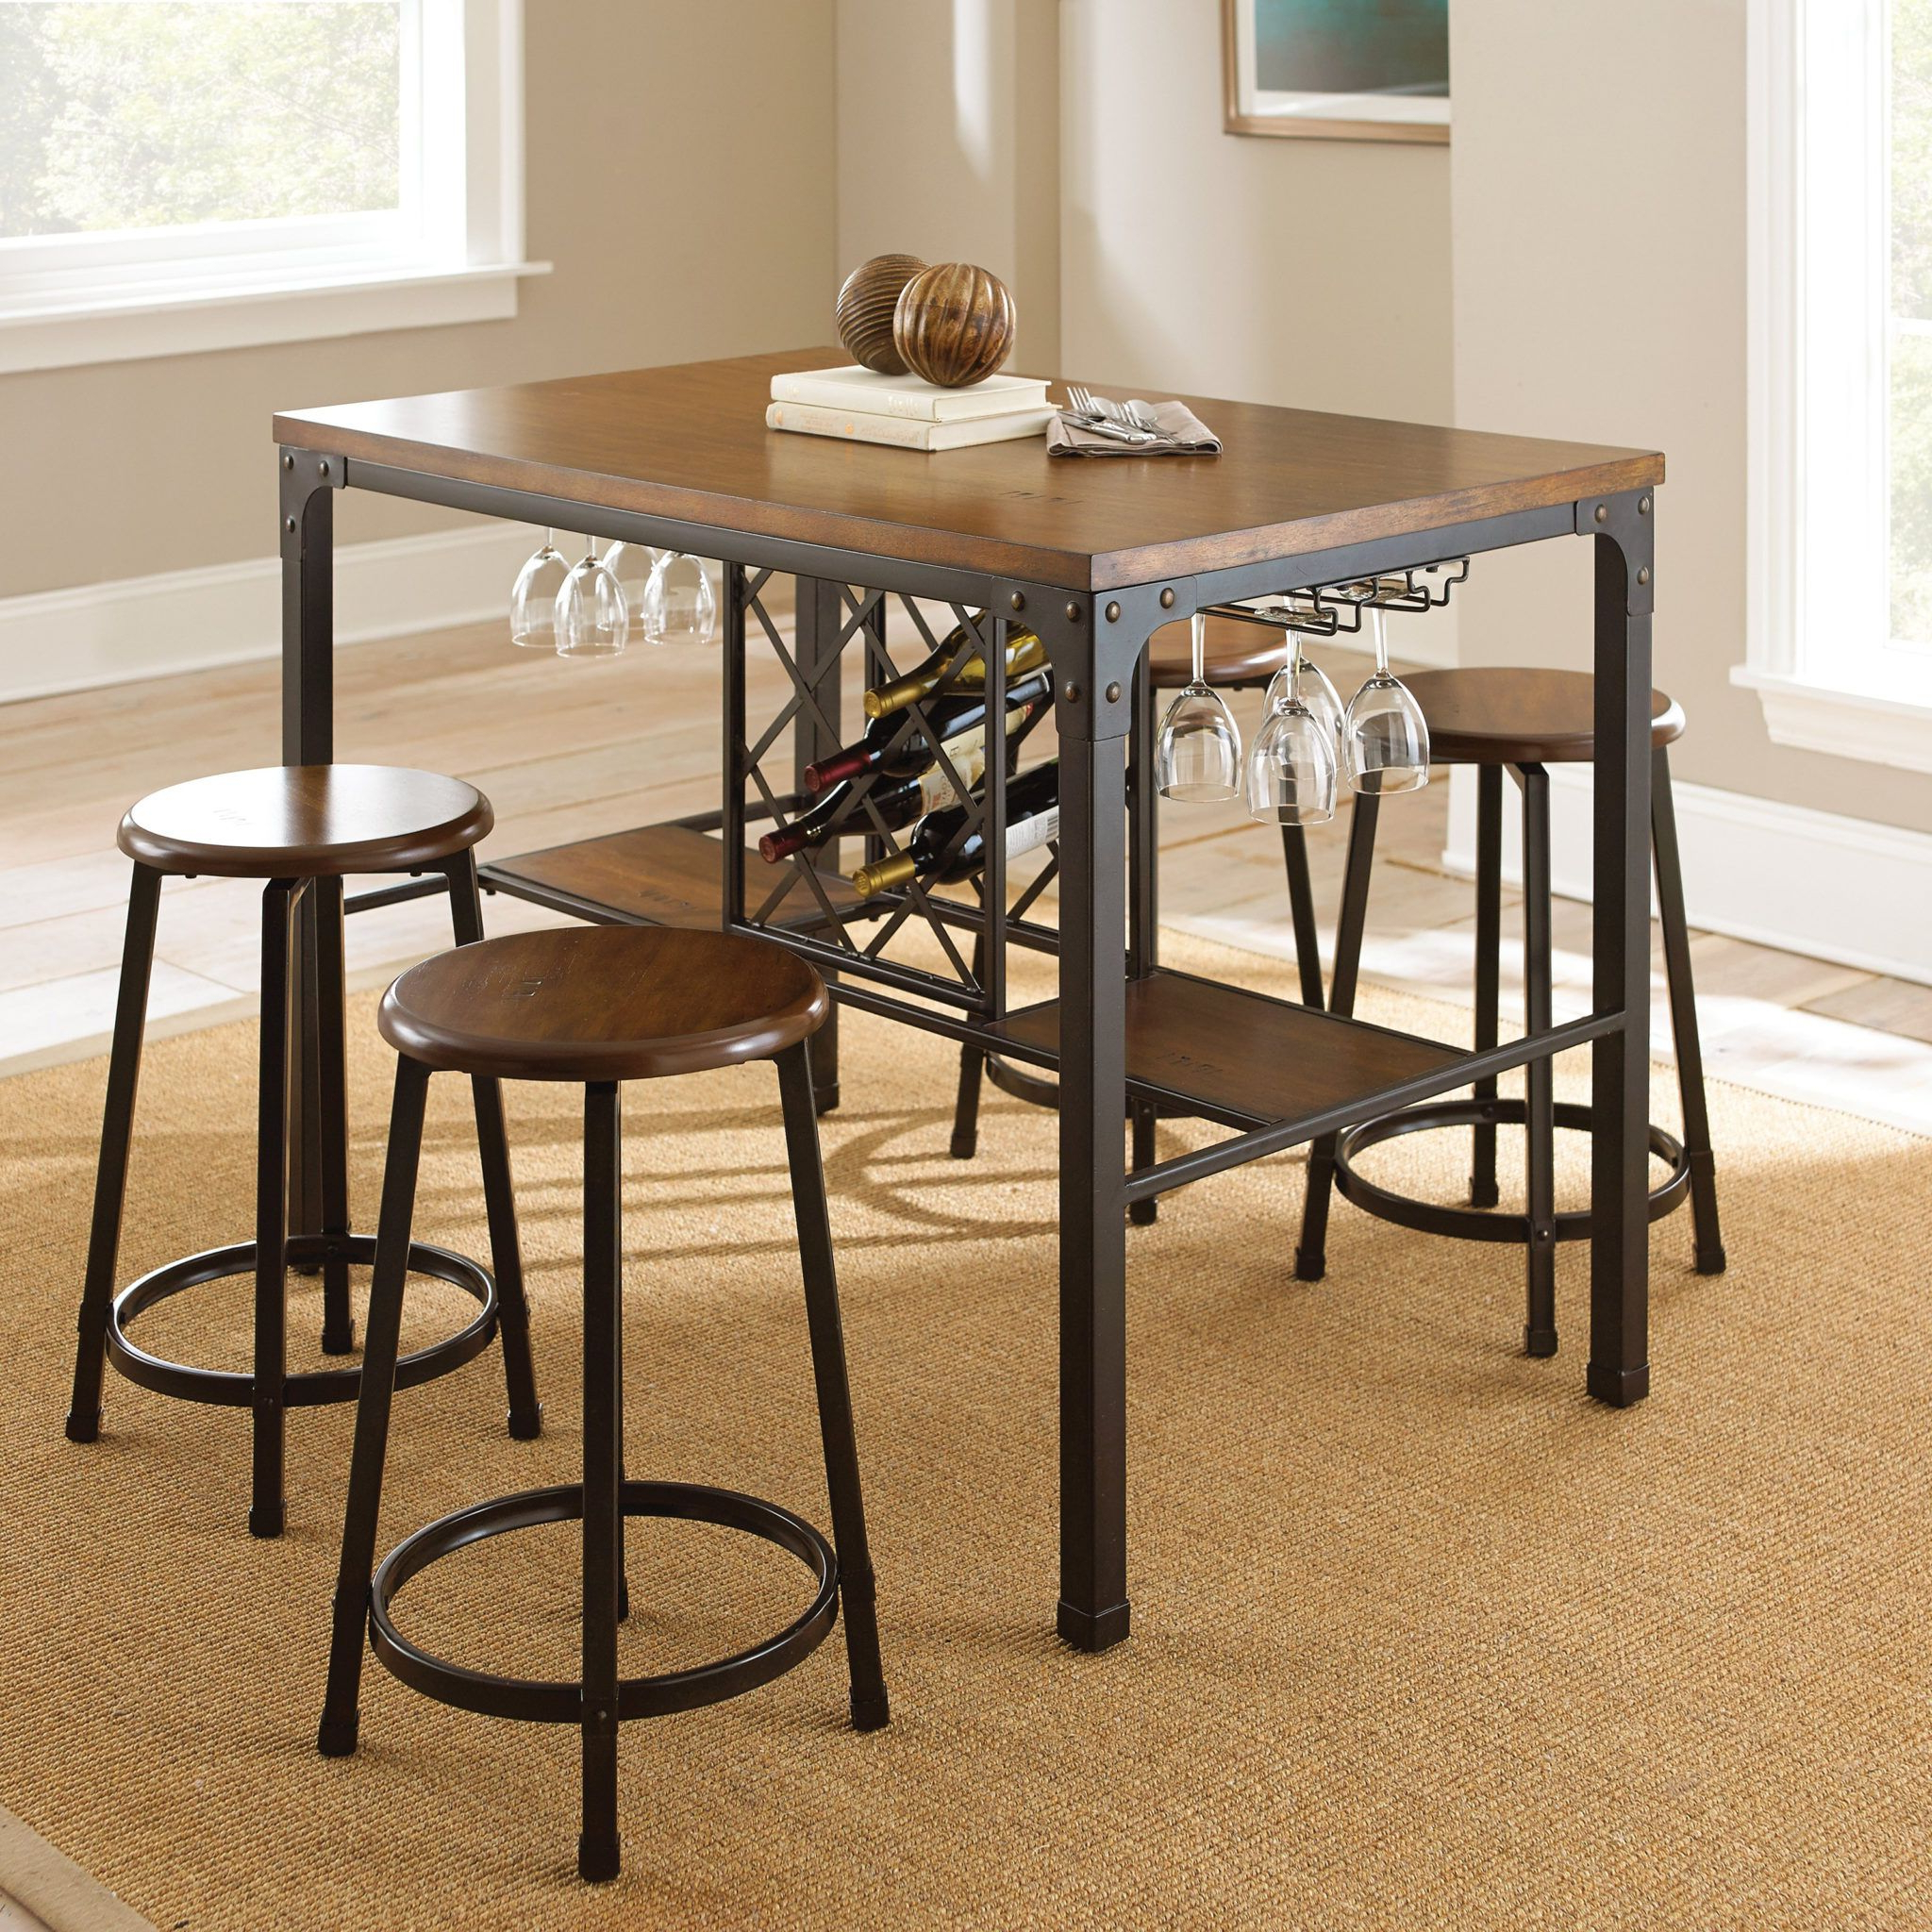 Preferred Creative Kitchen Table With Wine Rack Underneath (View 21 of 25)